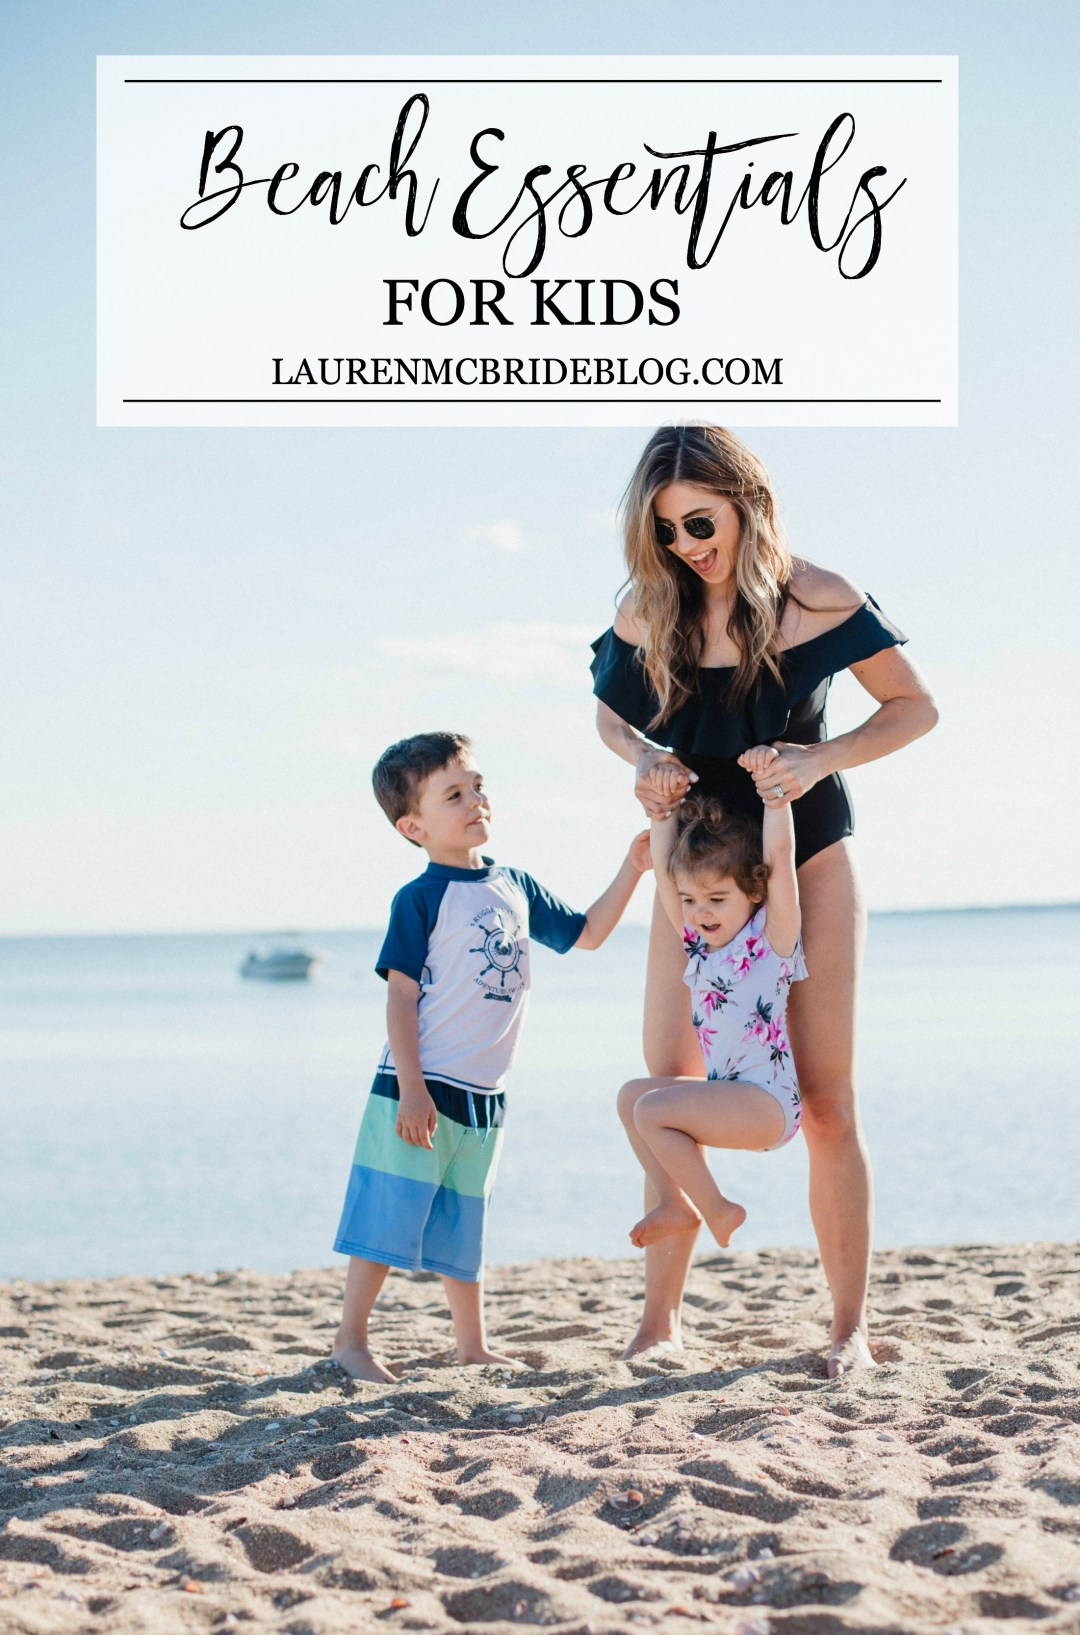 Life and style blogger Lauren McBride shares her Beach Essentials for Kids that will get your family through beach season this summer, featuring swimwear, toys, and more.